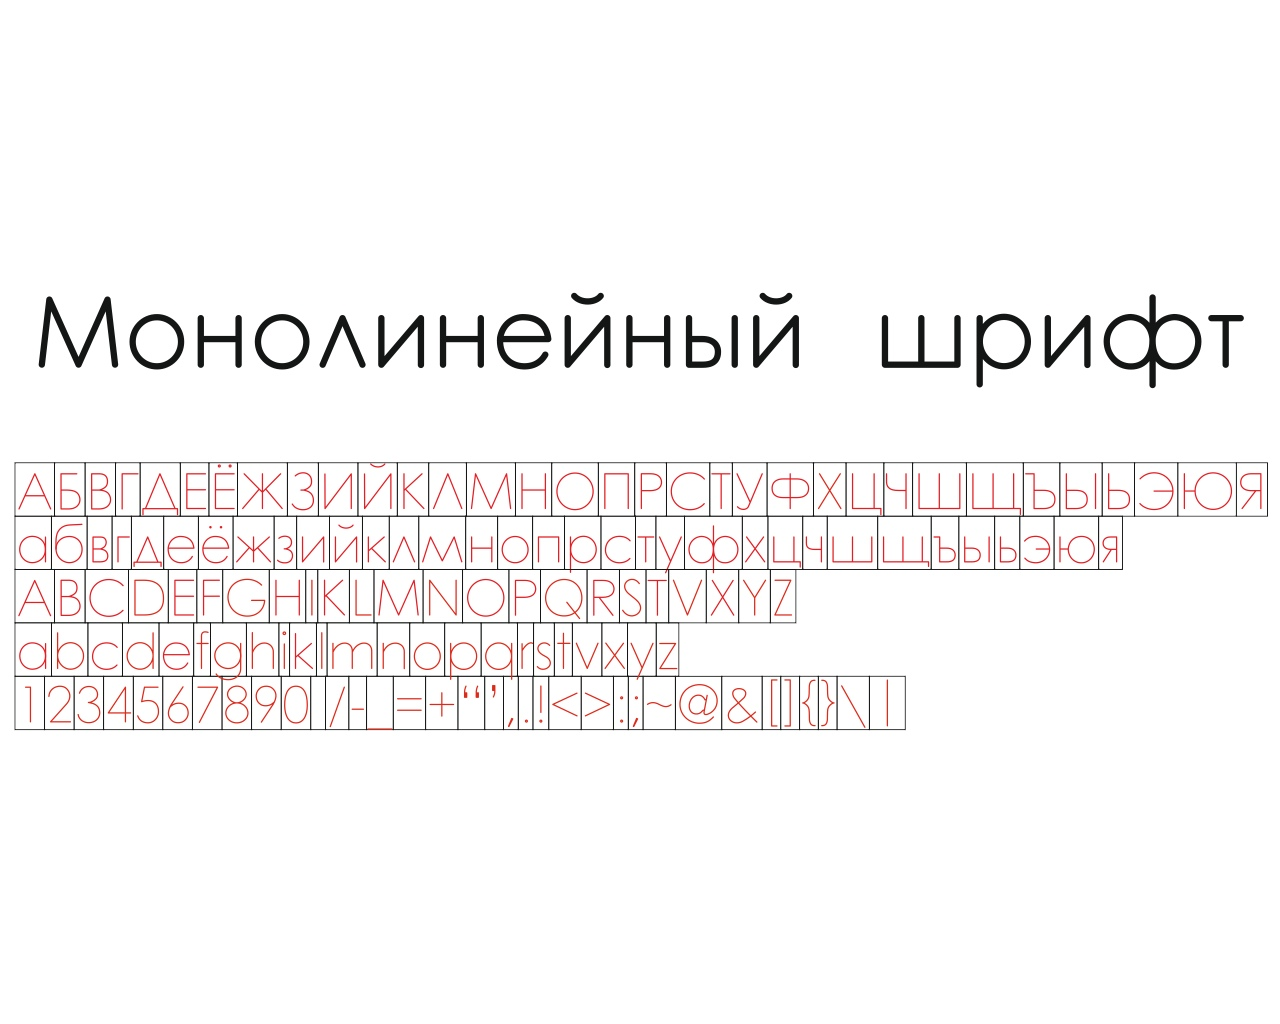 Laser Engraving Mono Font Cyrillic Font Russian Alphabet Letters Numbers Punctuation Signs Free CDR Vectors Art